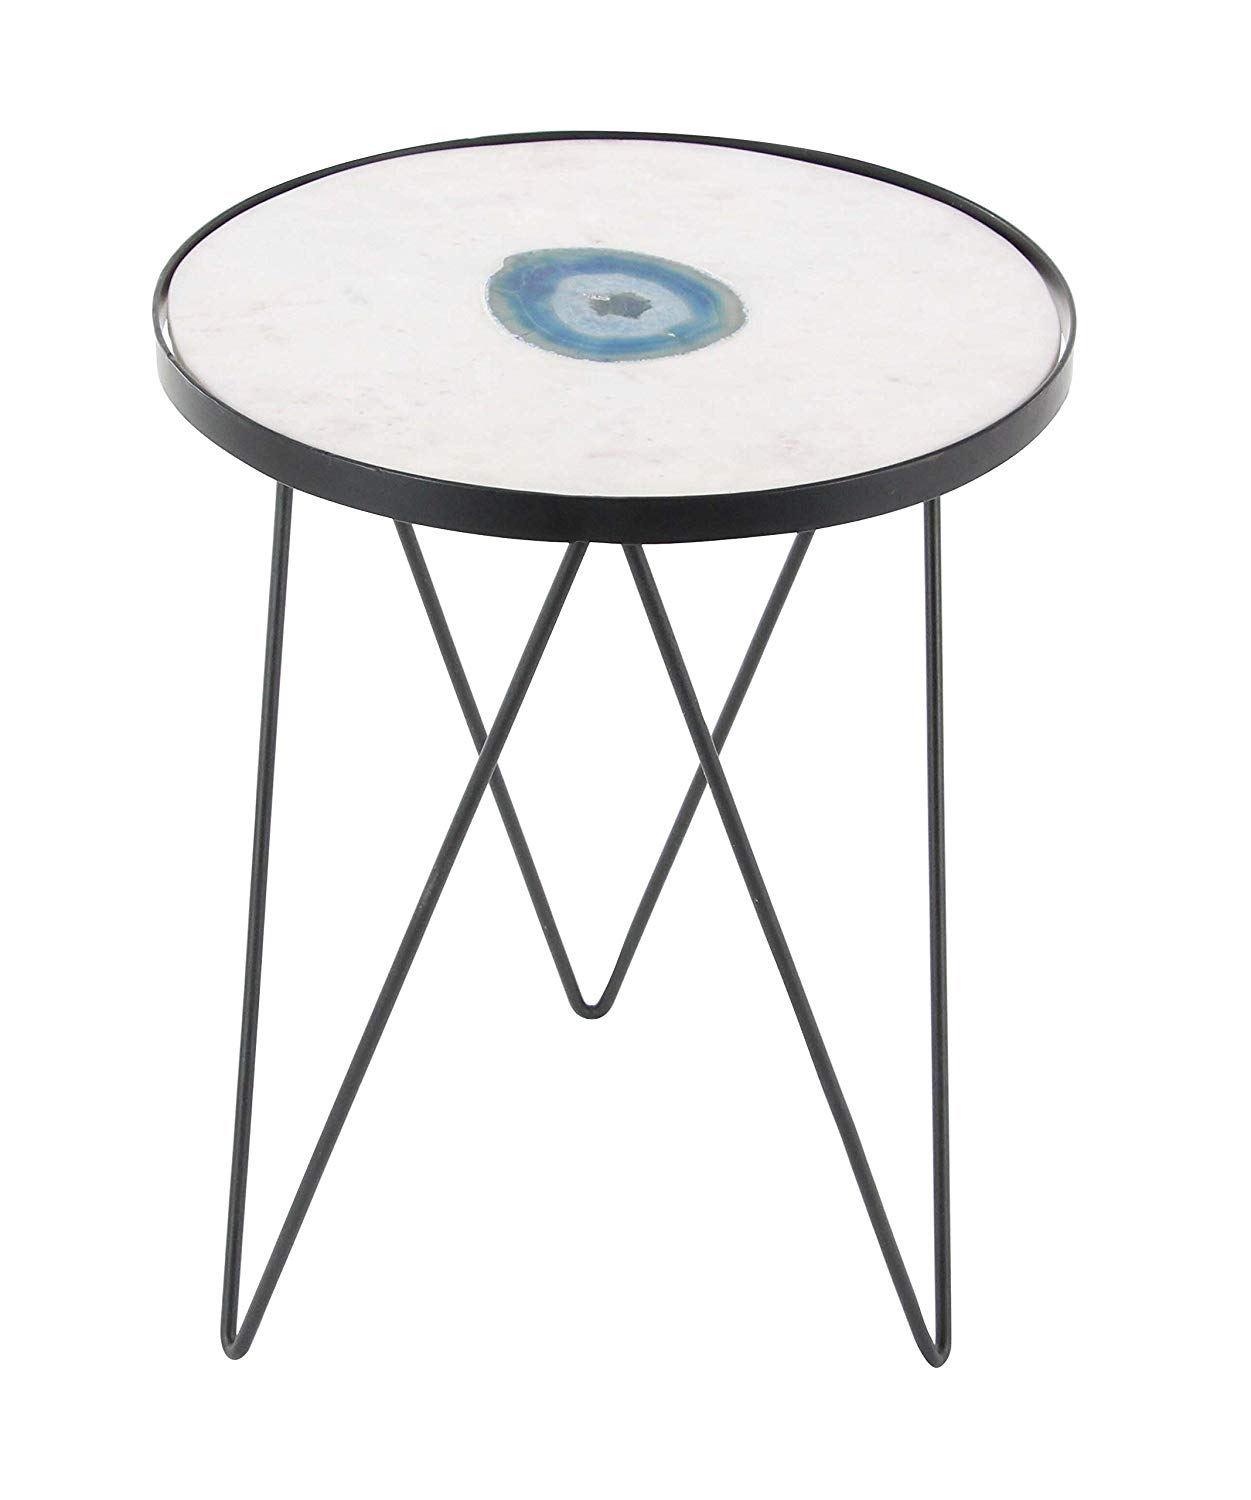 charming white marble and metal round accent table small for faux tablecloth pedestal wooden unfinished wood ideas covers decorating threshold side full size wicker storage